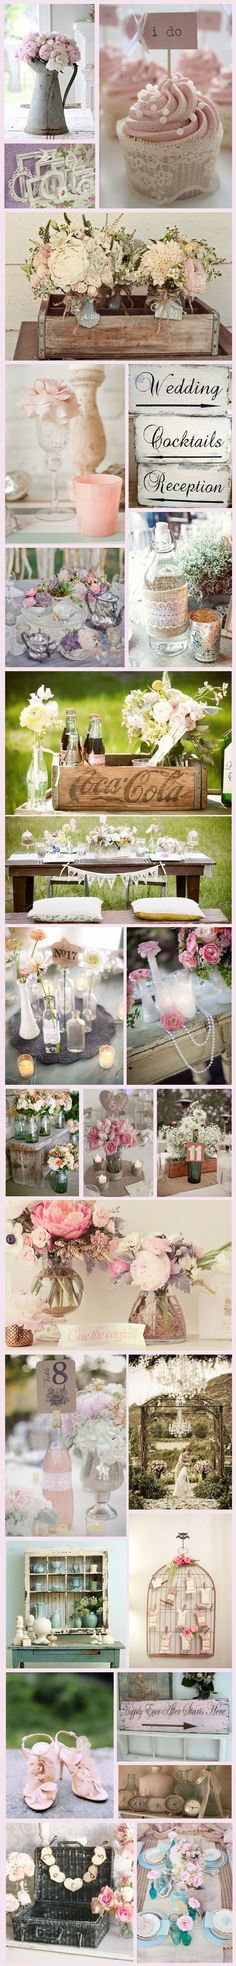 Vintage themed ideas